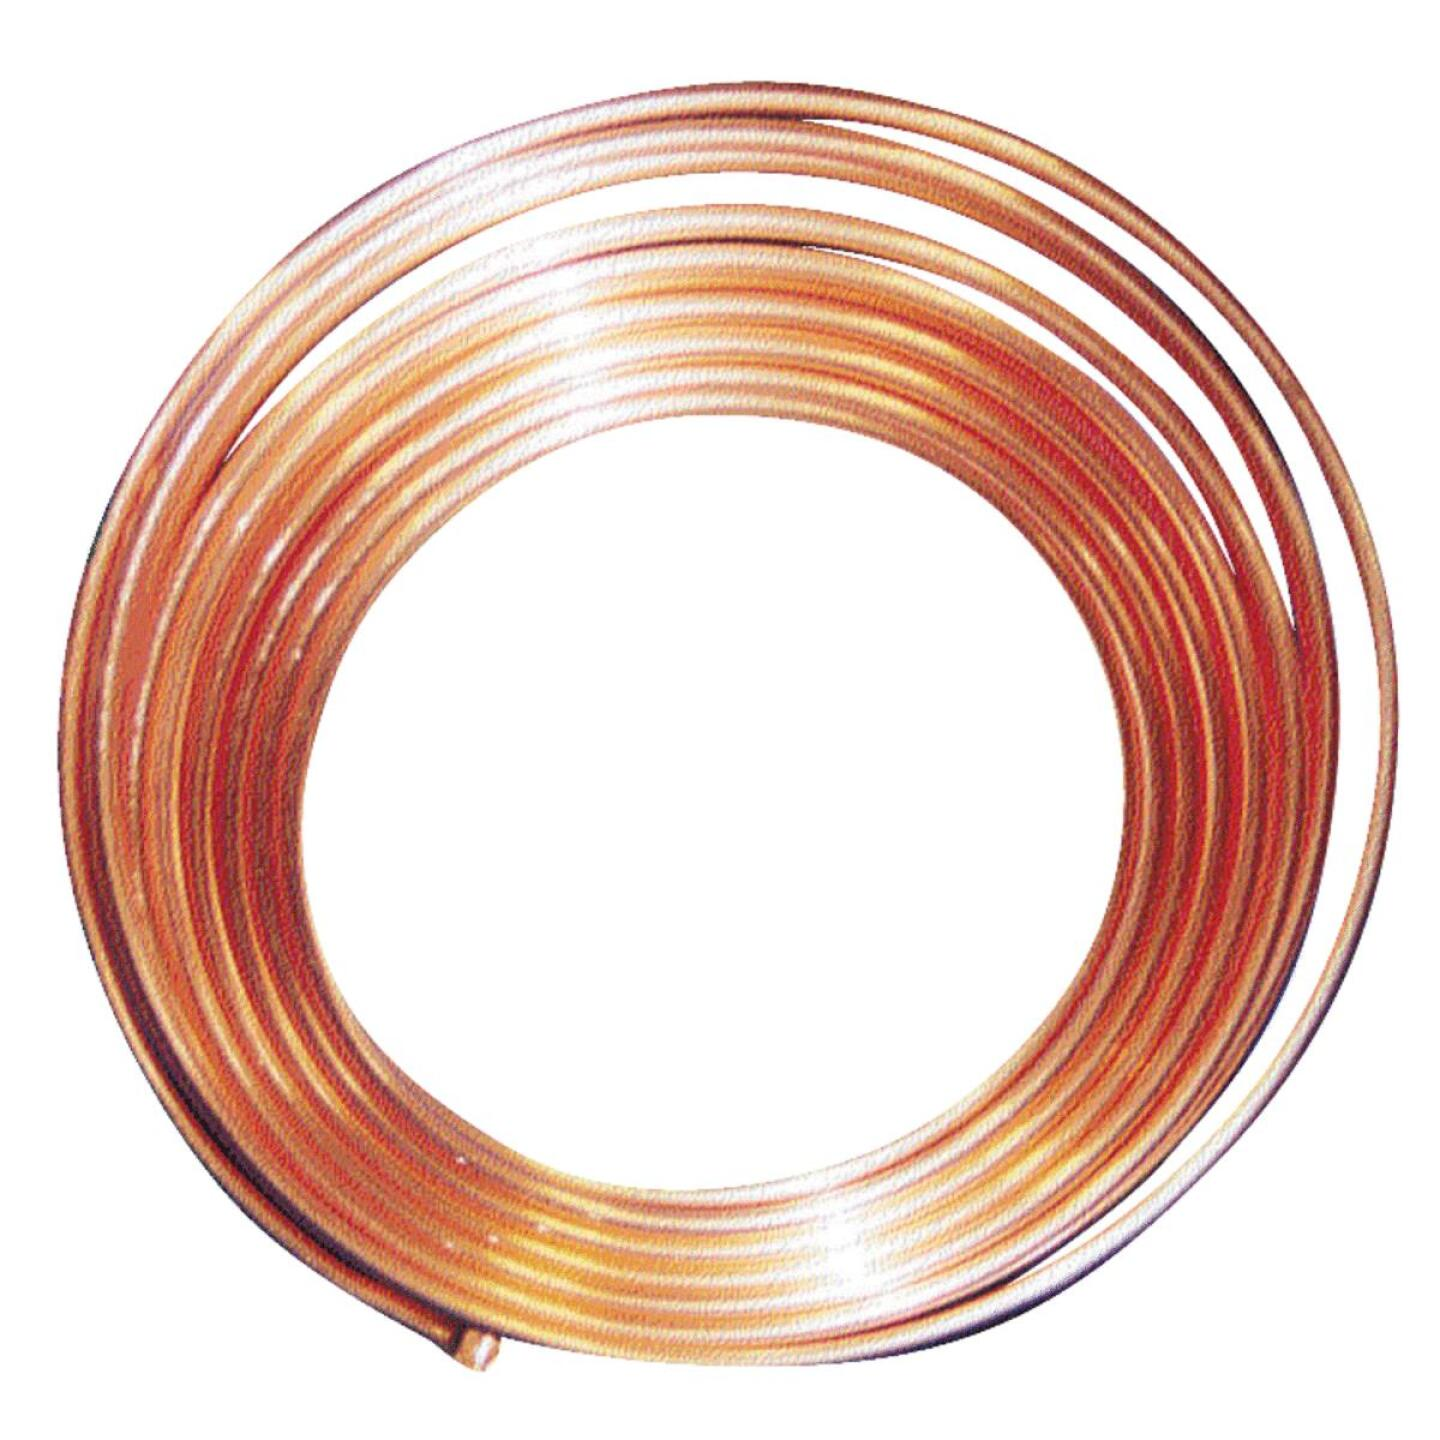 Mueller Streamline 1/4 In. ID x 20 Ft. Soft Coil Copper Tubing Image 1